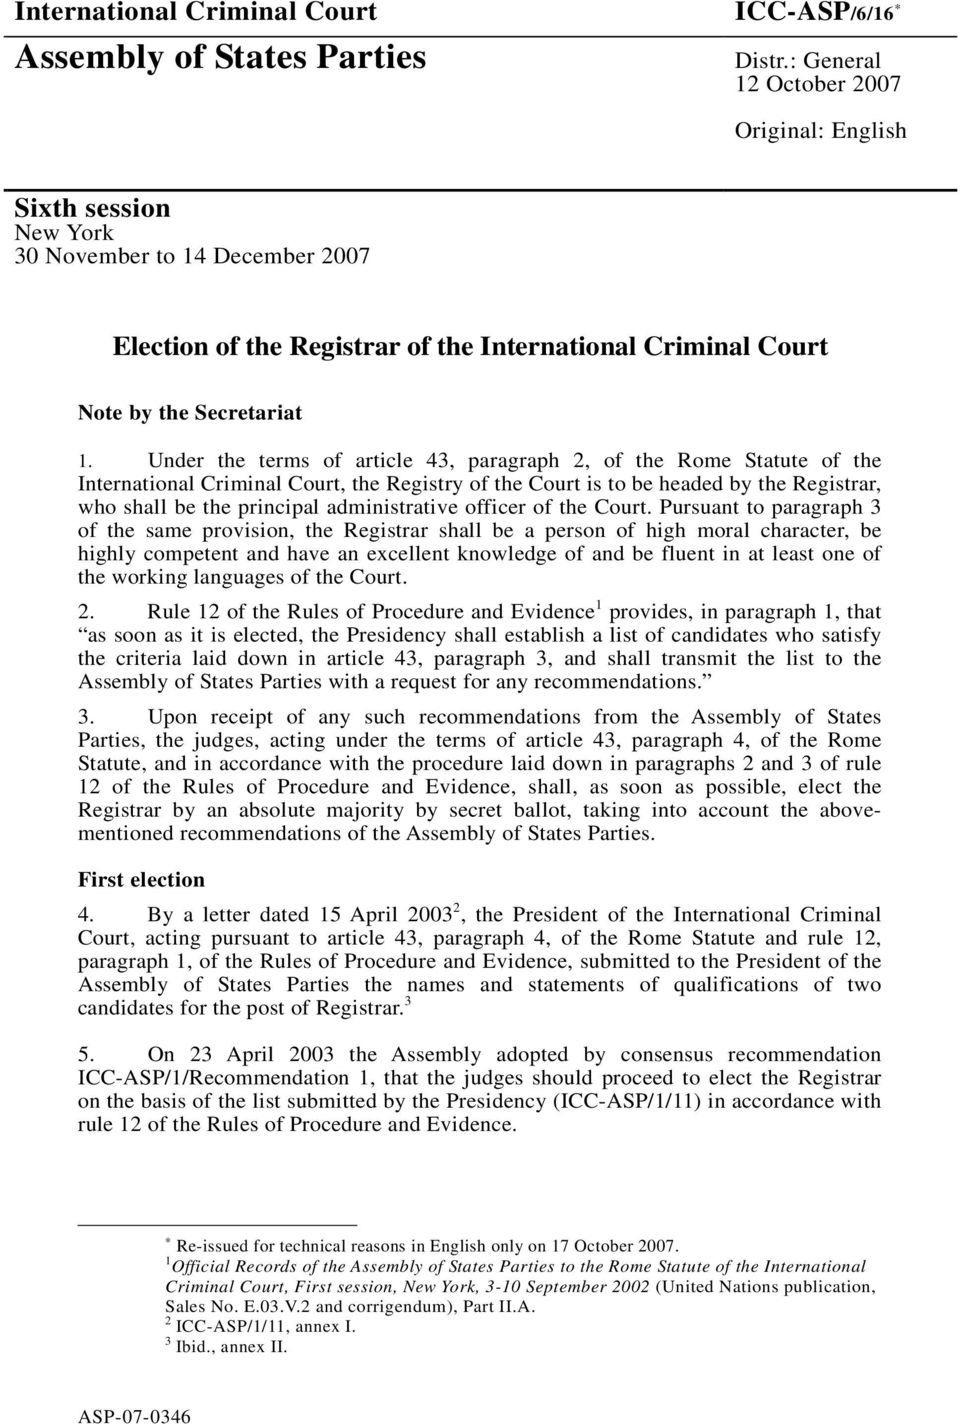 Under the terms of article 43, paragraph 2, of the Rome Statute of the International Criminal Court, the Registry of the Court is to be headed by the Registrar, who shall be the principal